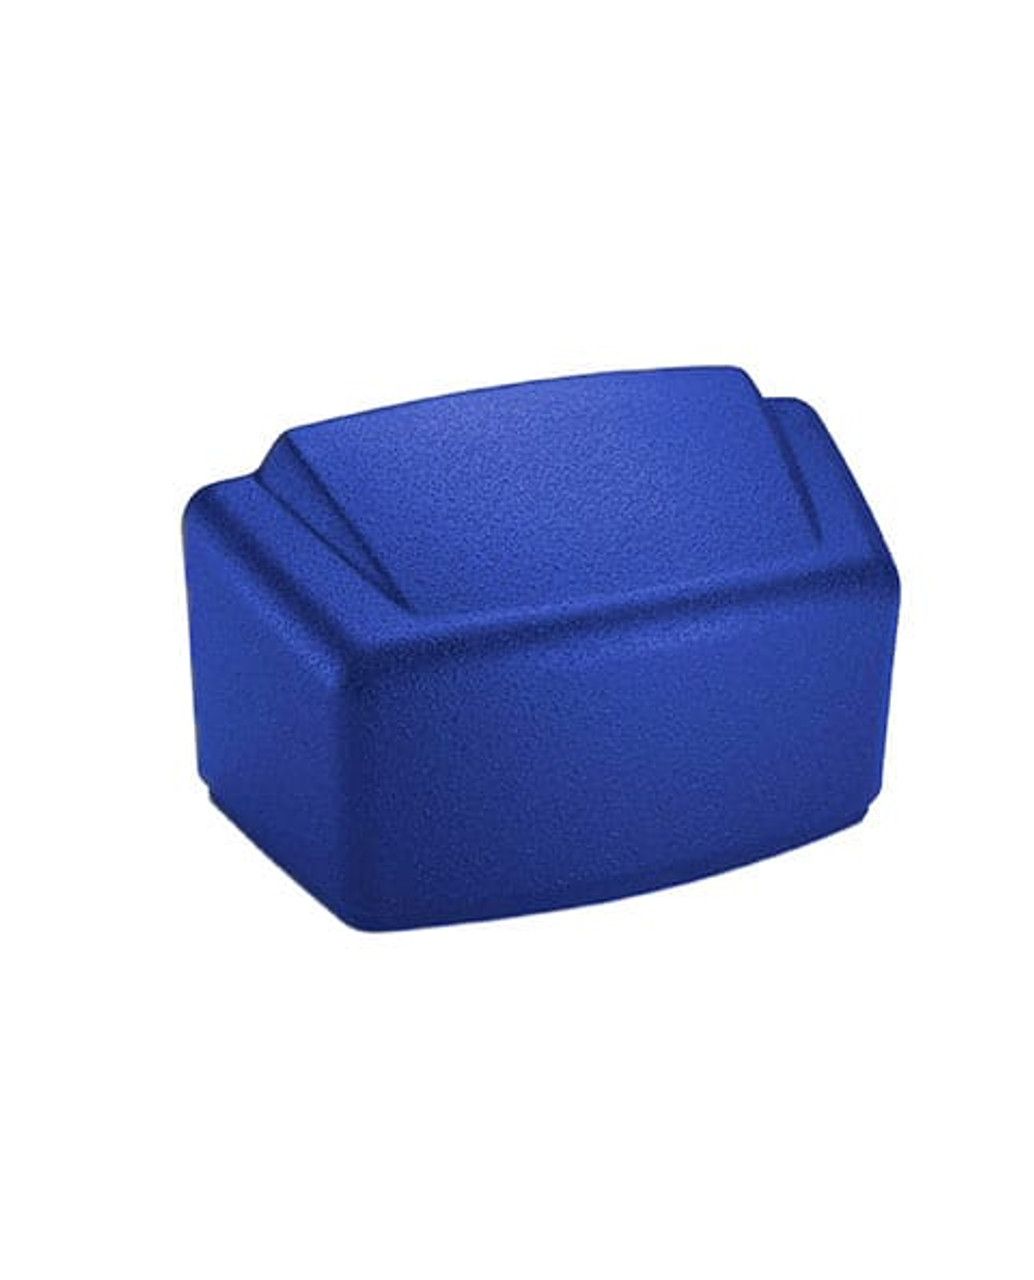 Replacement Lid 797001 for Commercial Zone Paper Towel Dispenser Blue